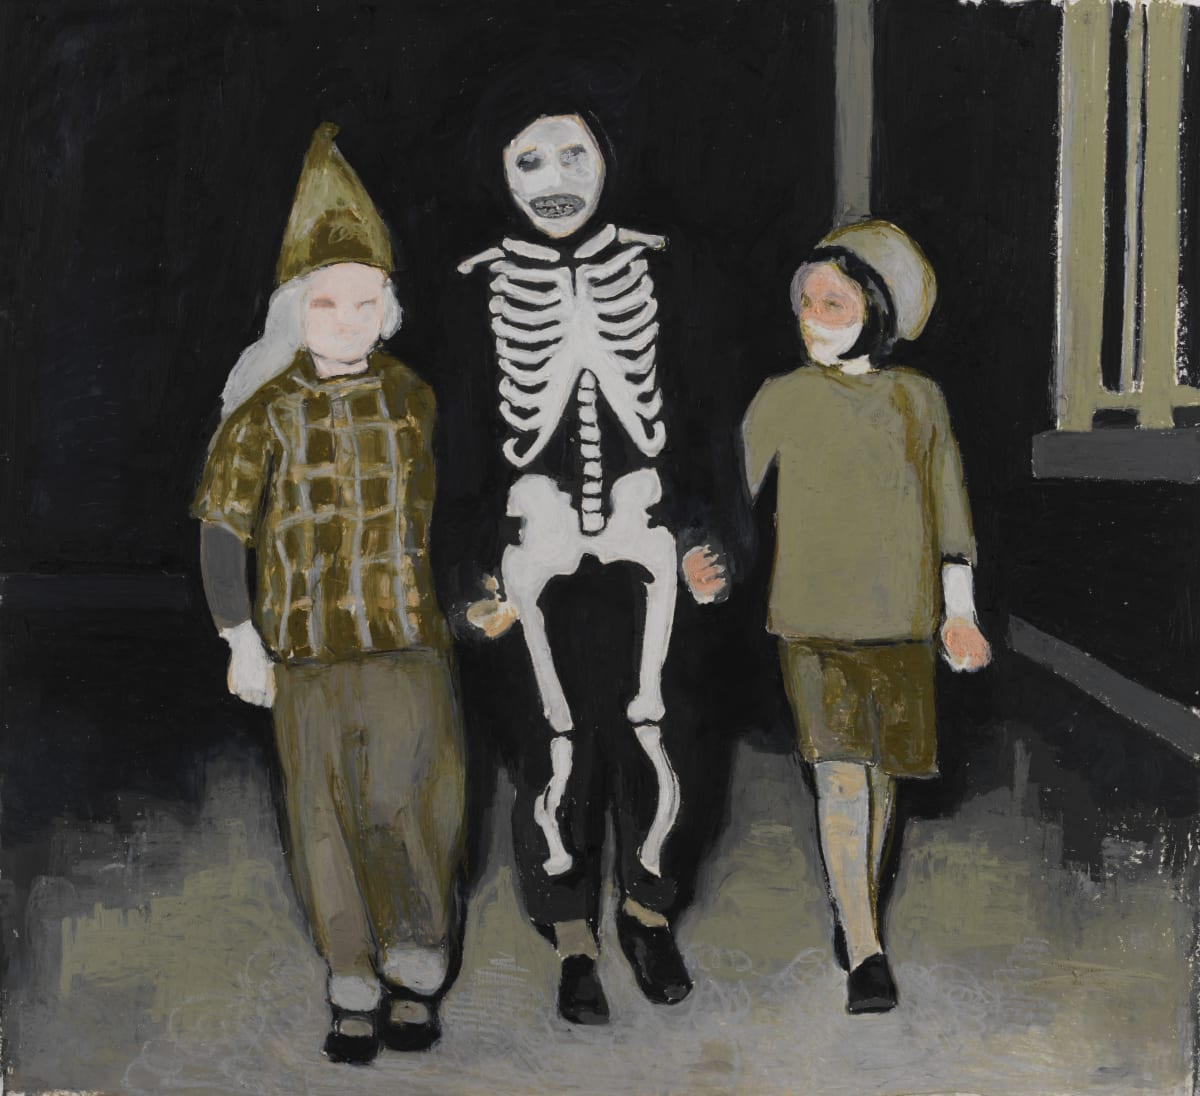 Mercedes Helnwein, Skelelton kid, 2015